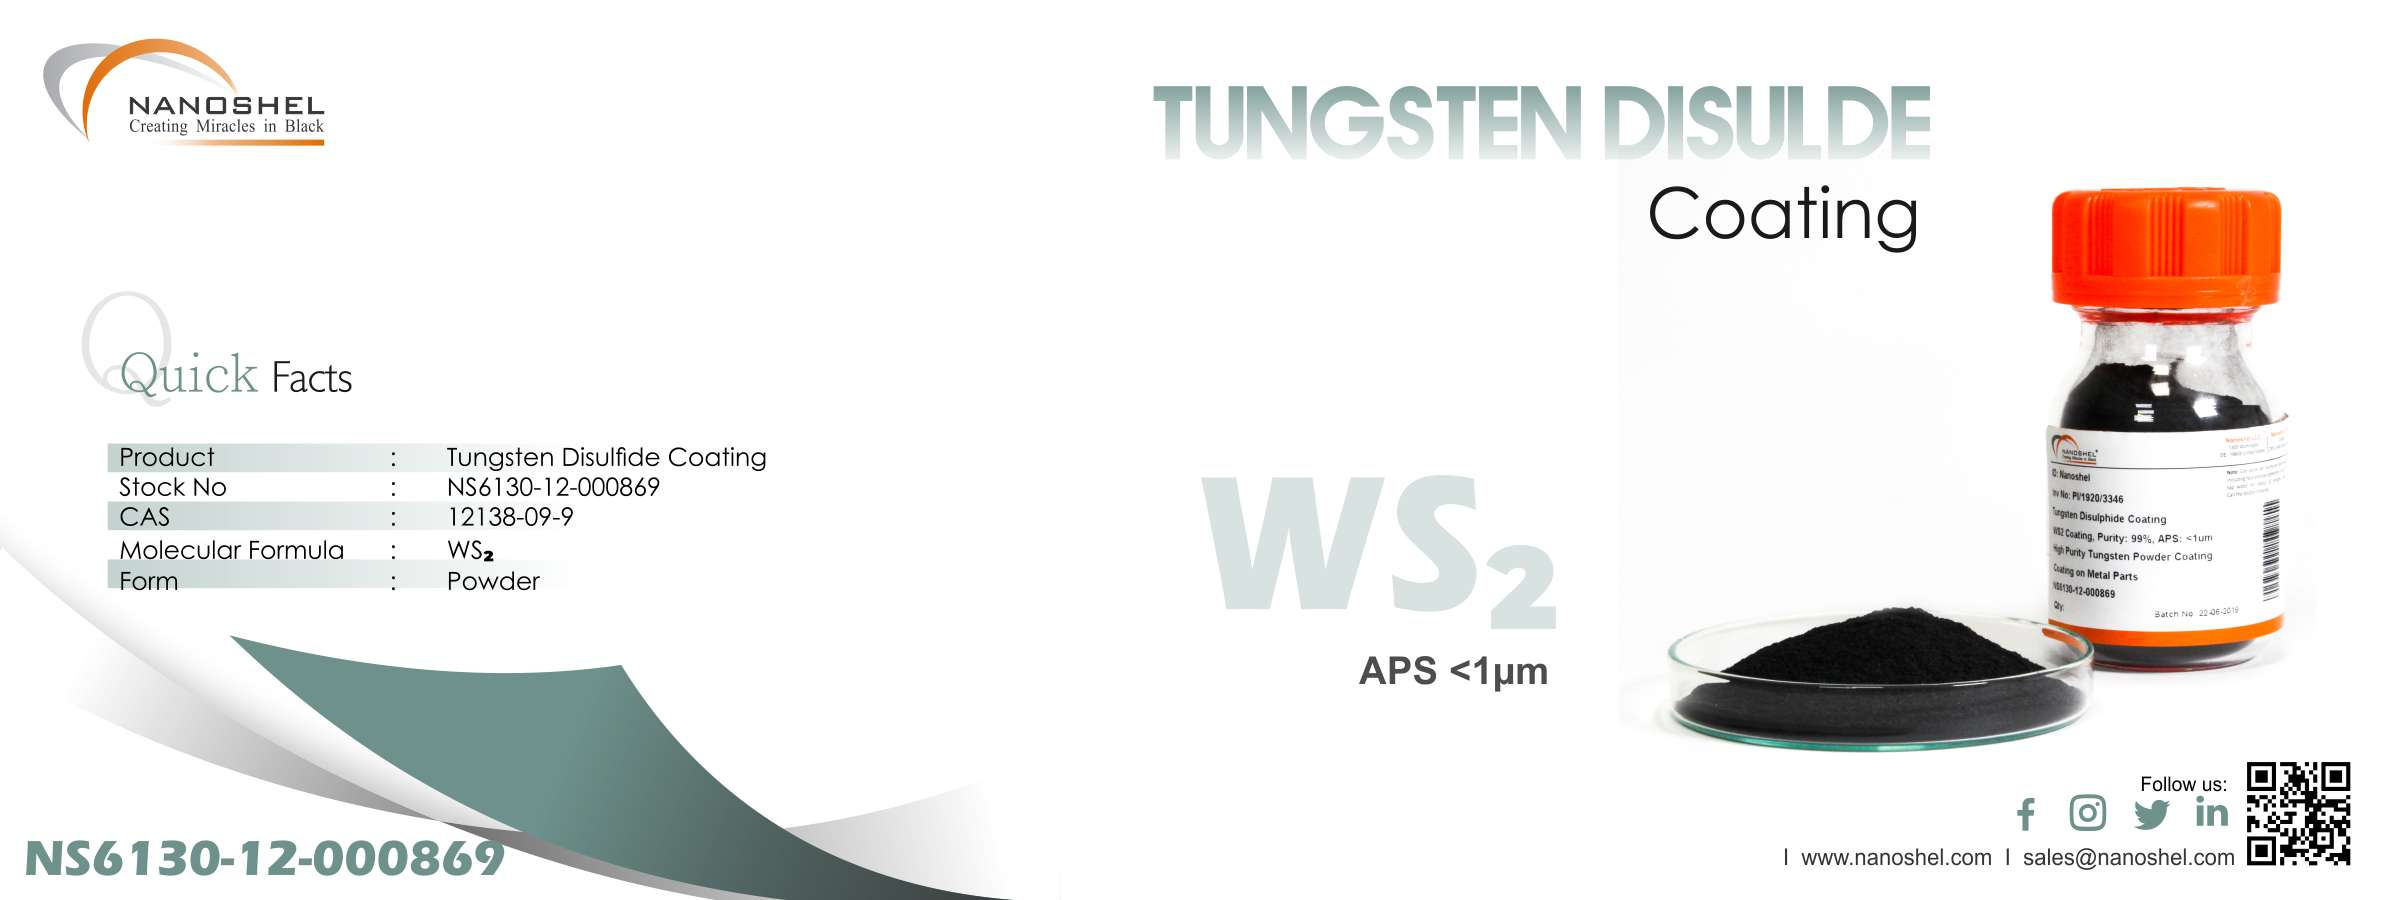 Tungsten Disulfide Coating